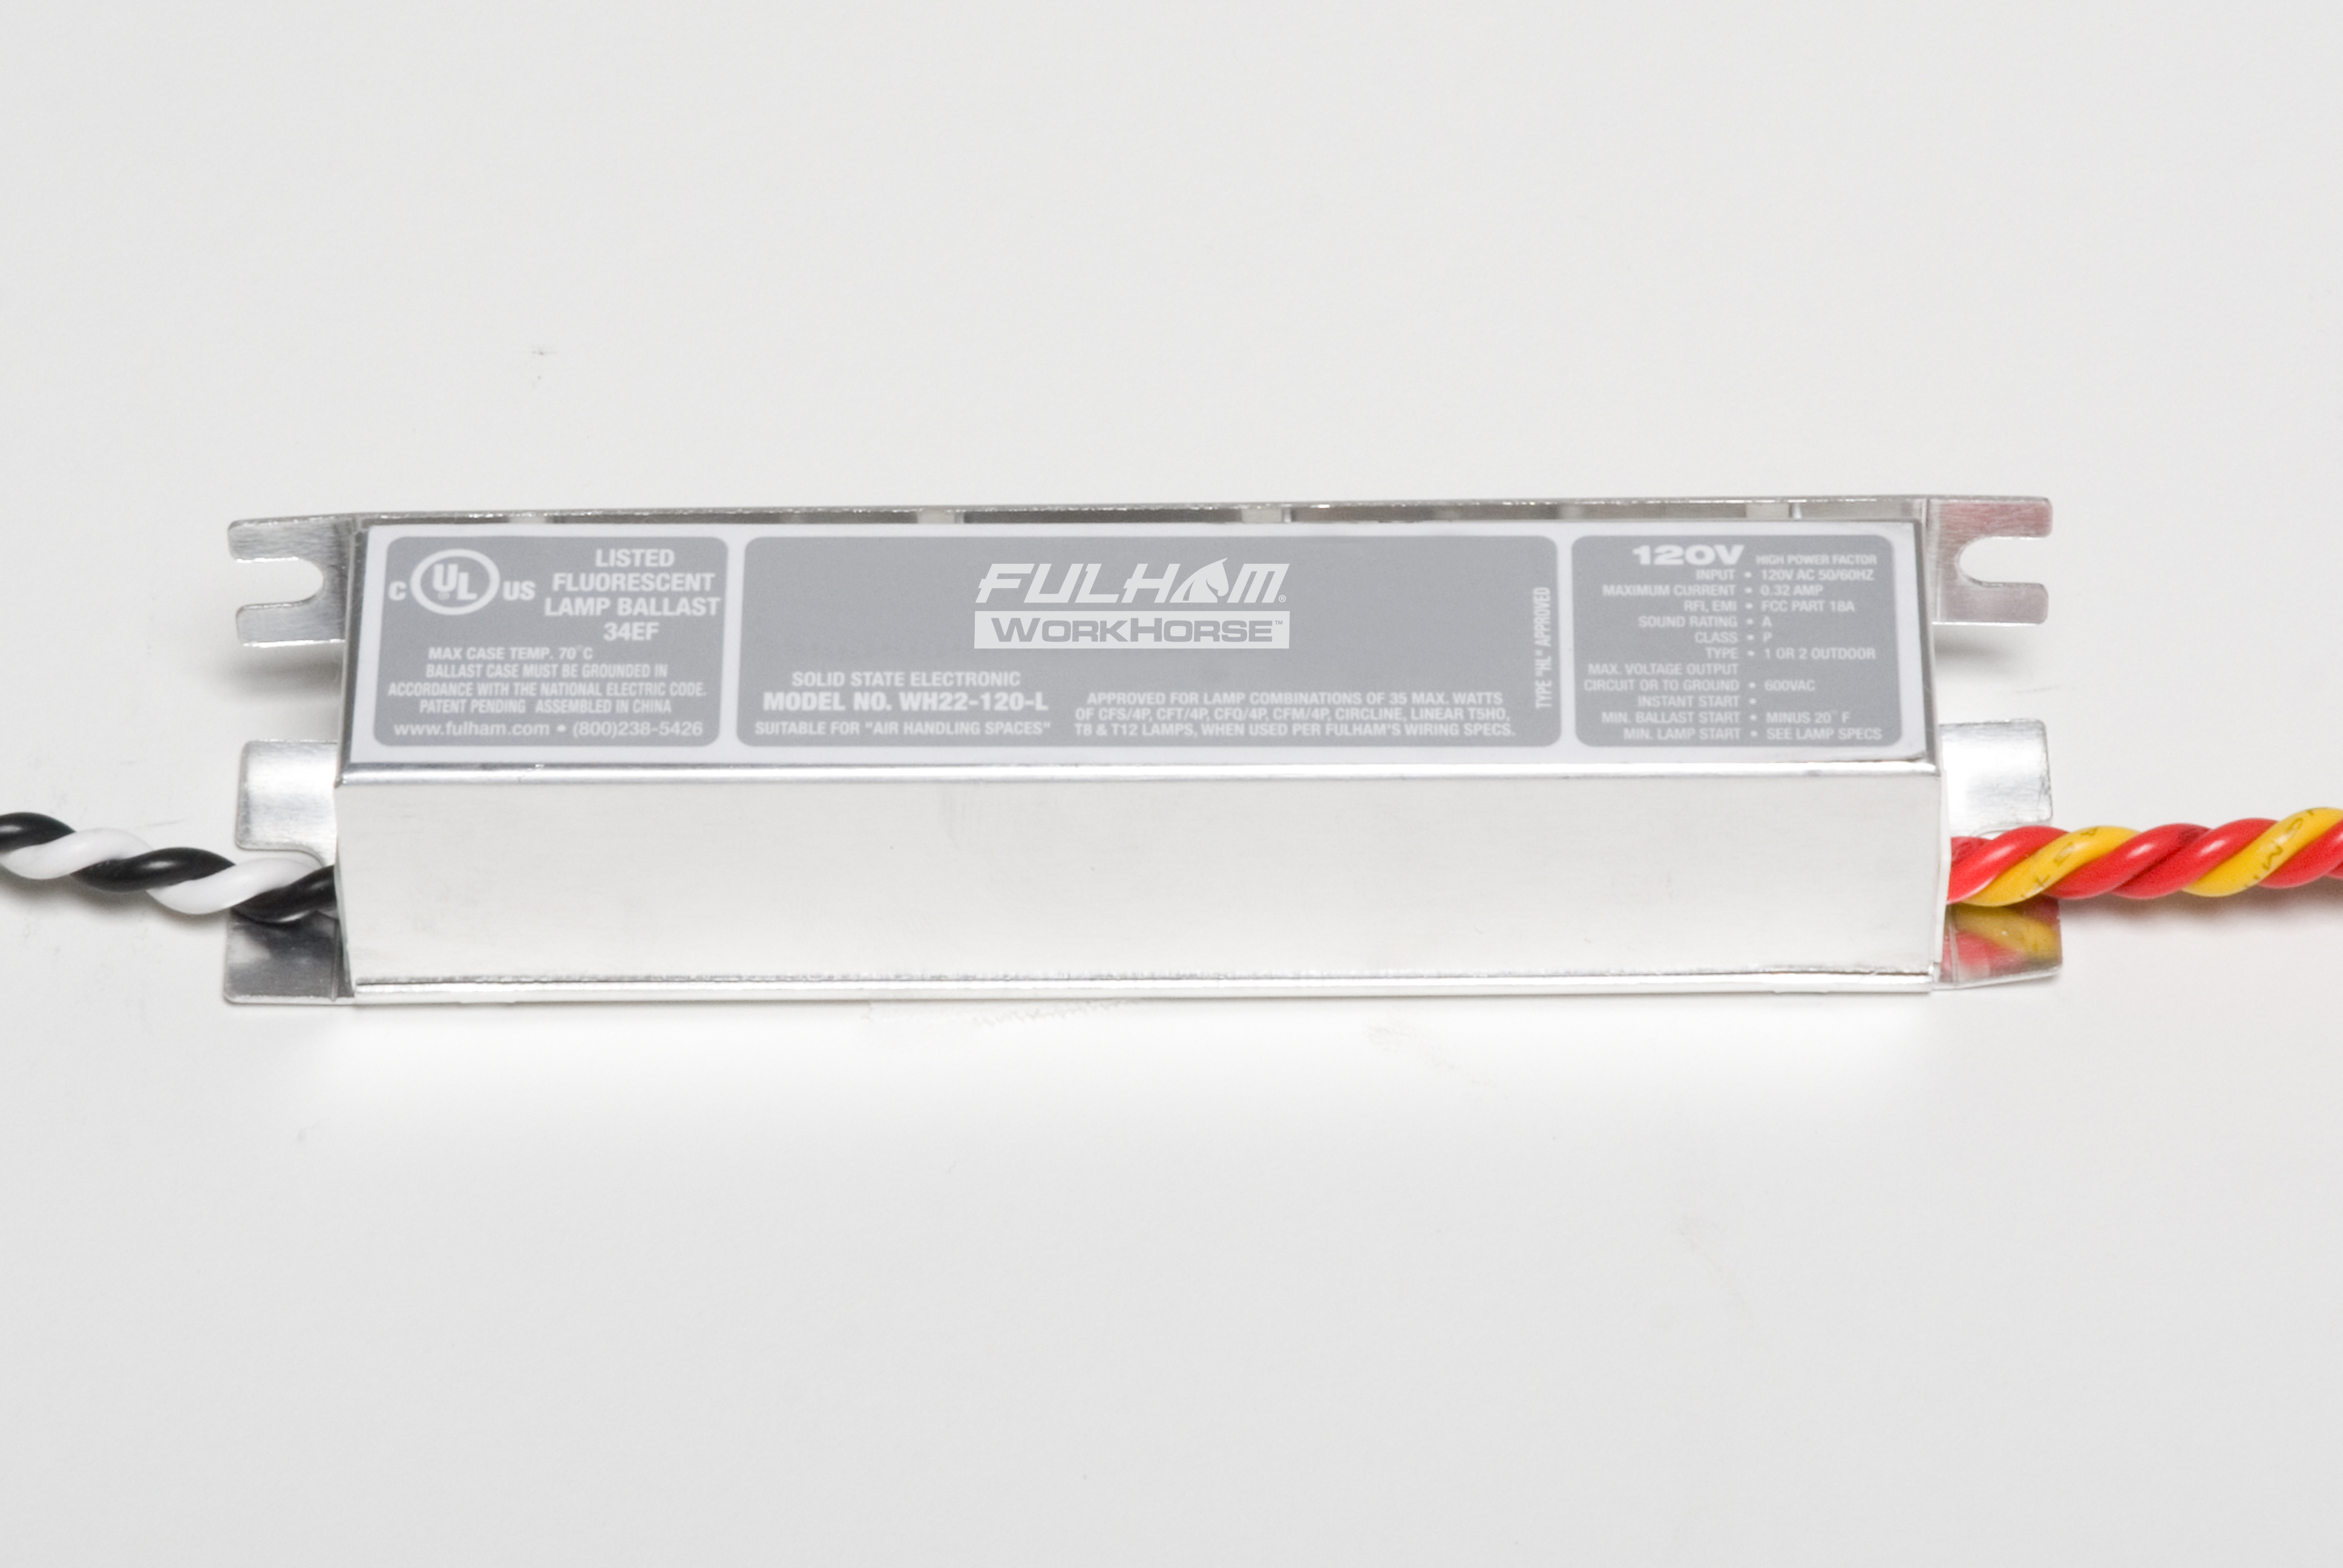 Fulham North Coast Electric Workhorse Ballast Wiring Diagram Fulhamwh22 120 Lworkhorse 22 V Linear